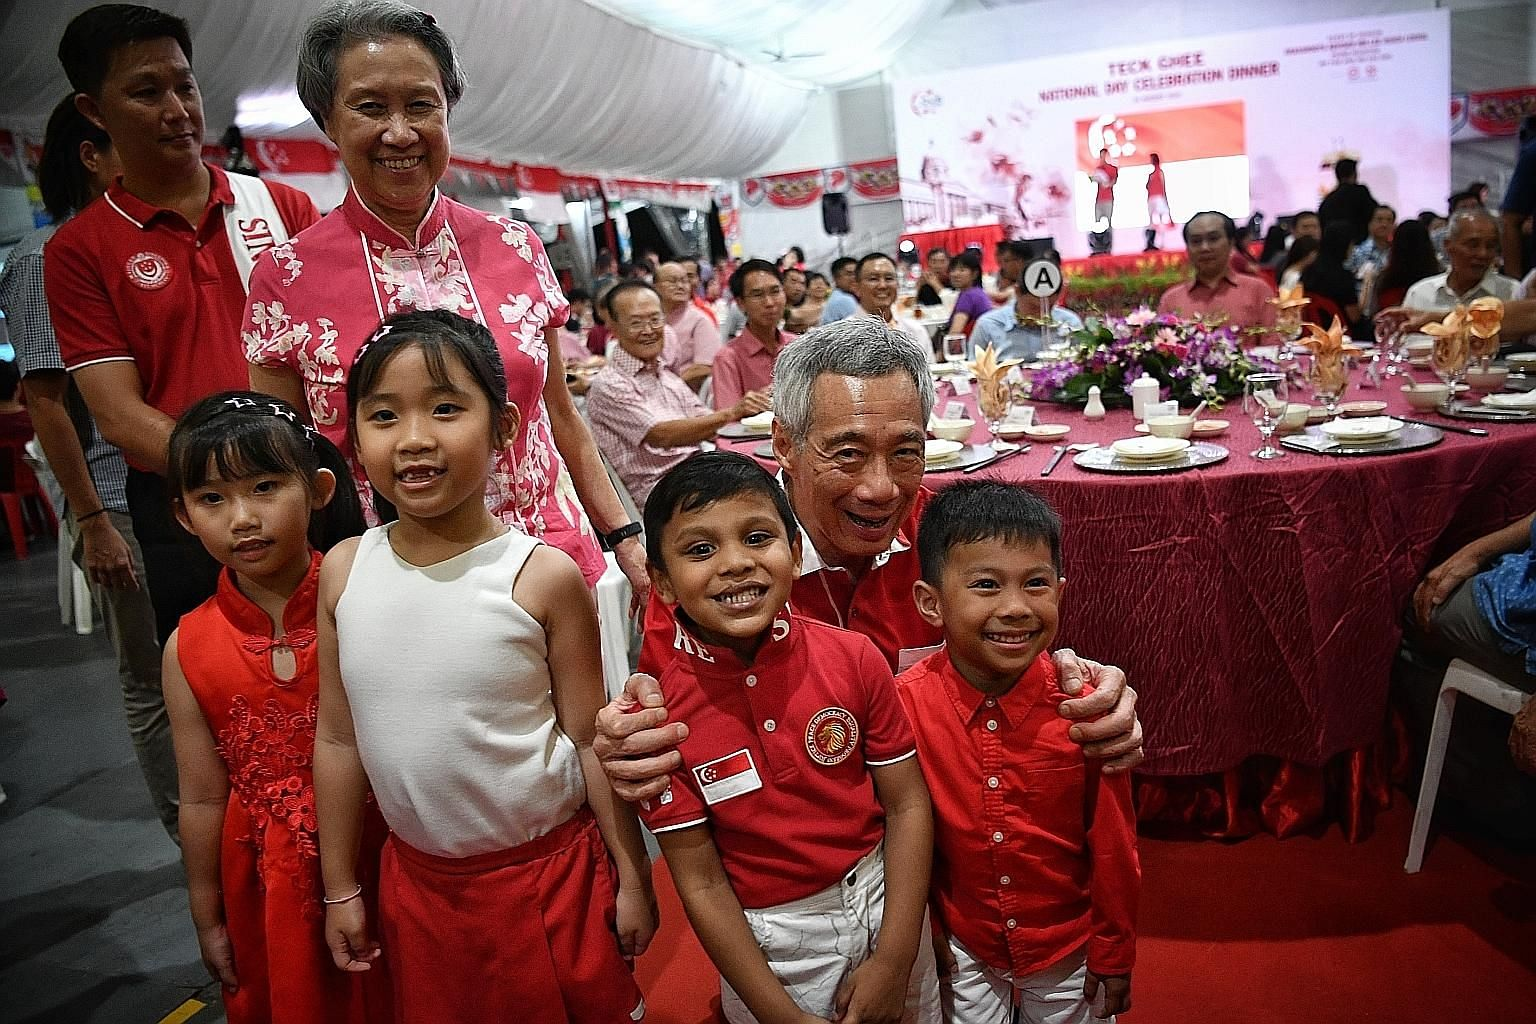 Prime Minister Lee Hsien Loong and Mrs Lee with young guests at the Teck Ghee National Day celebration dinner yesterday, which was attended by about 2,500 Teck Ghee residents and guests.